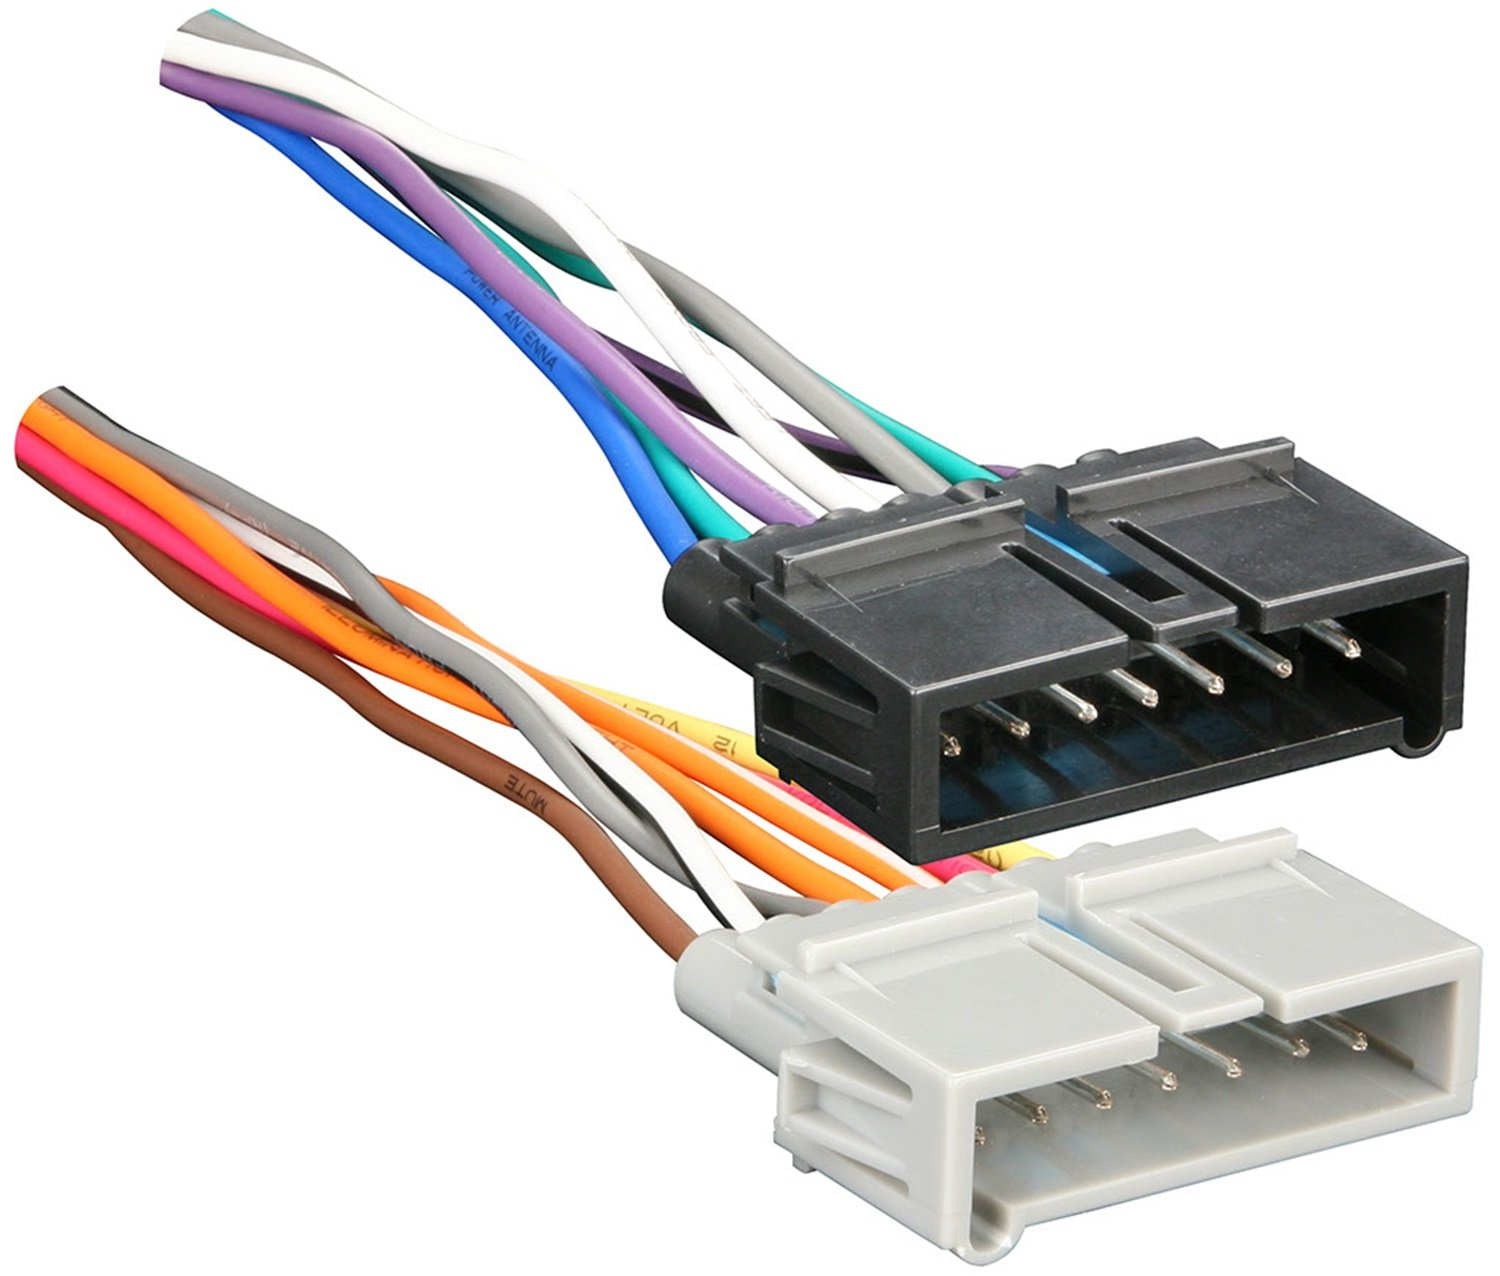 71QUZlC QWL._SL1500_ amazon com metra 70 1817 radio wiring harness for chrysler jeep stereo wiring harness at mifinder.co